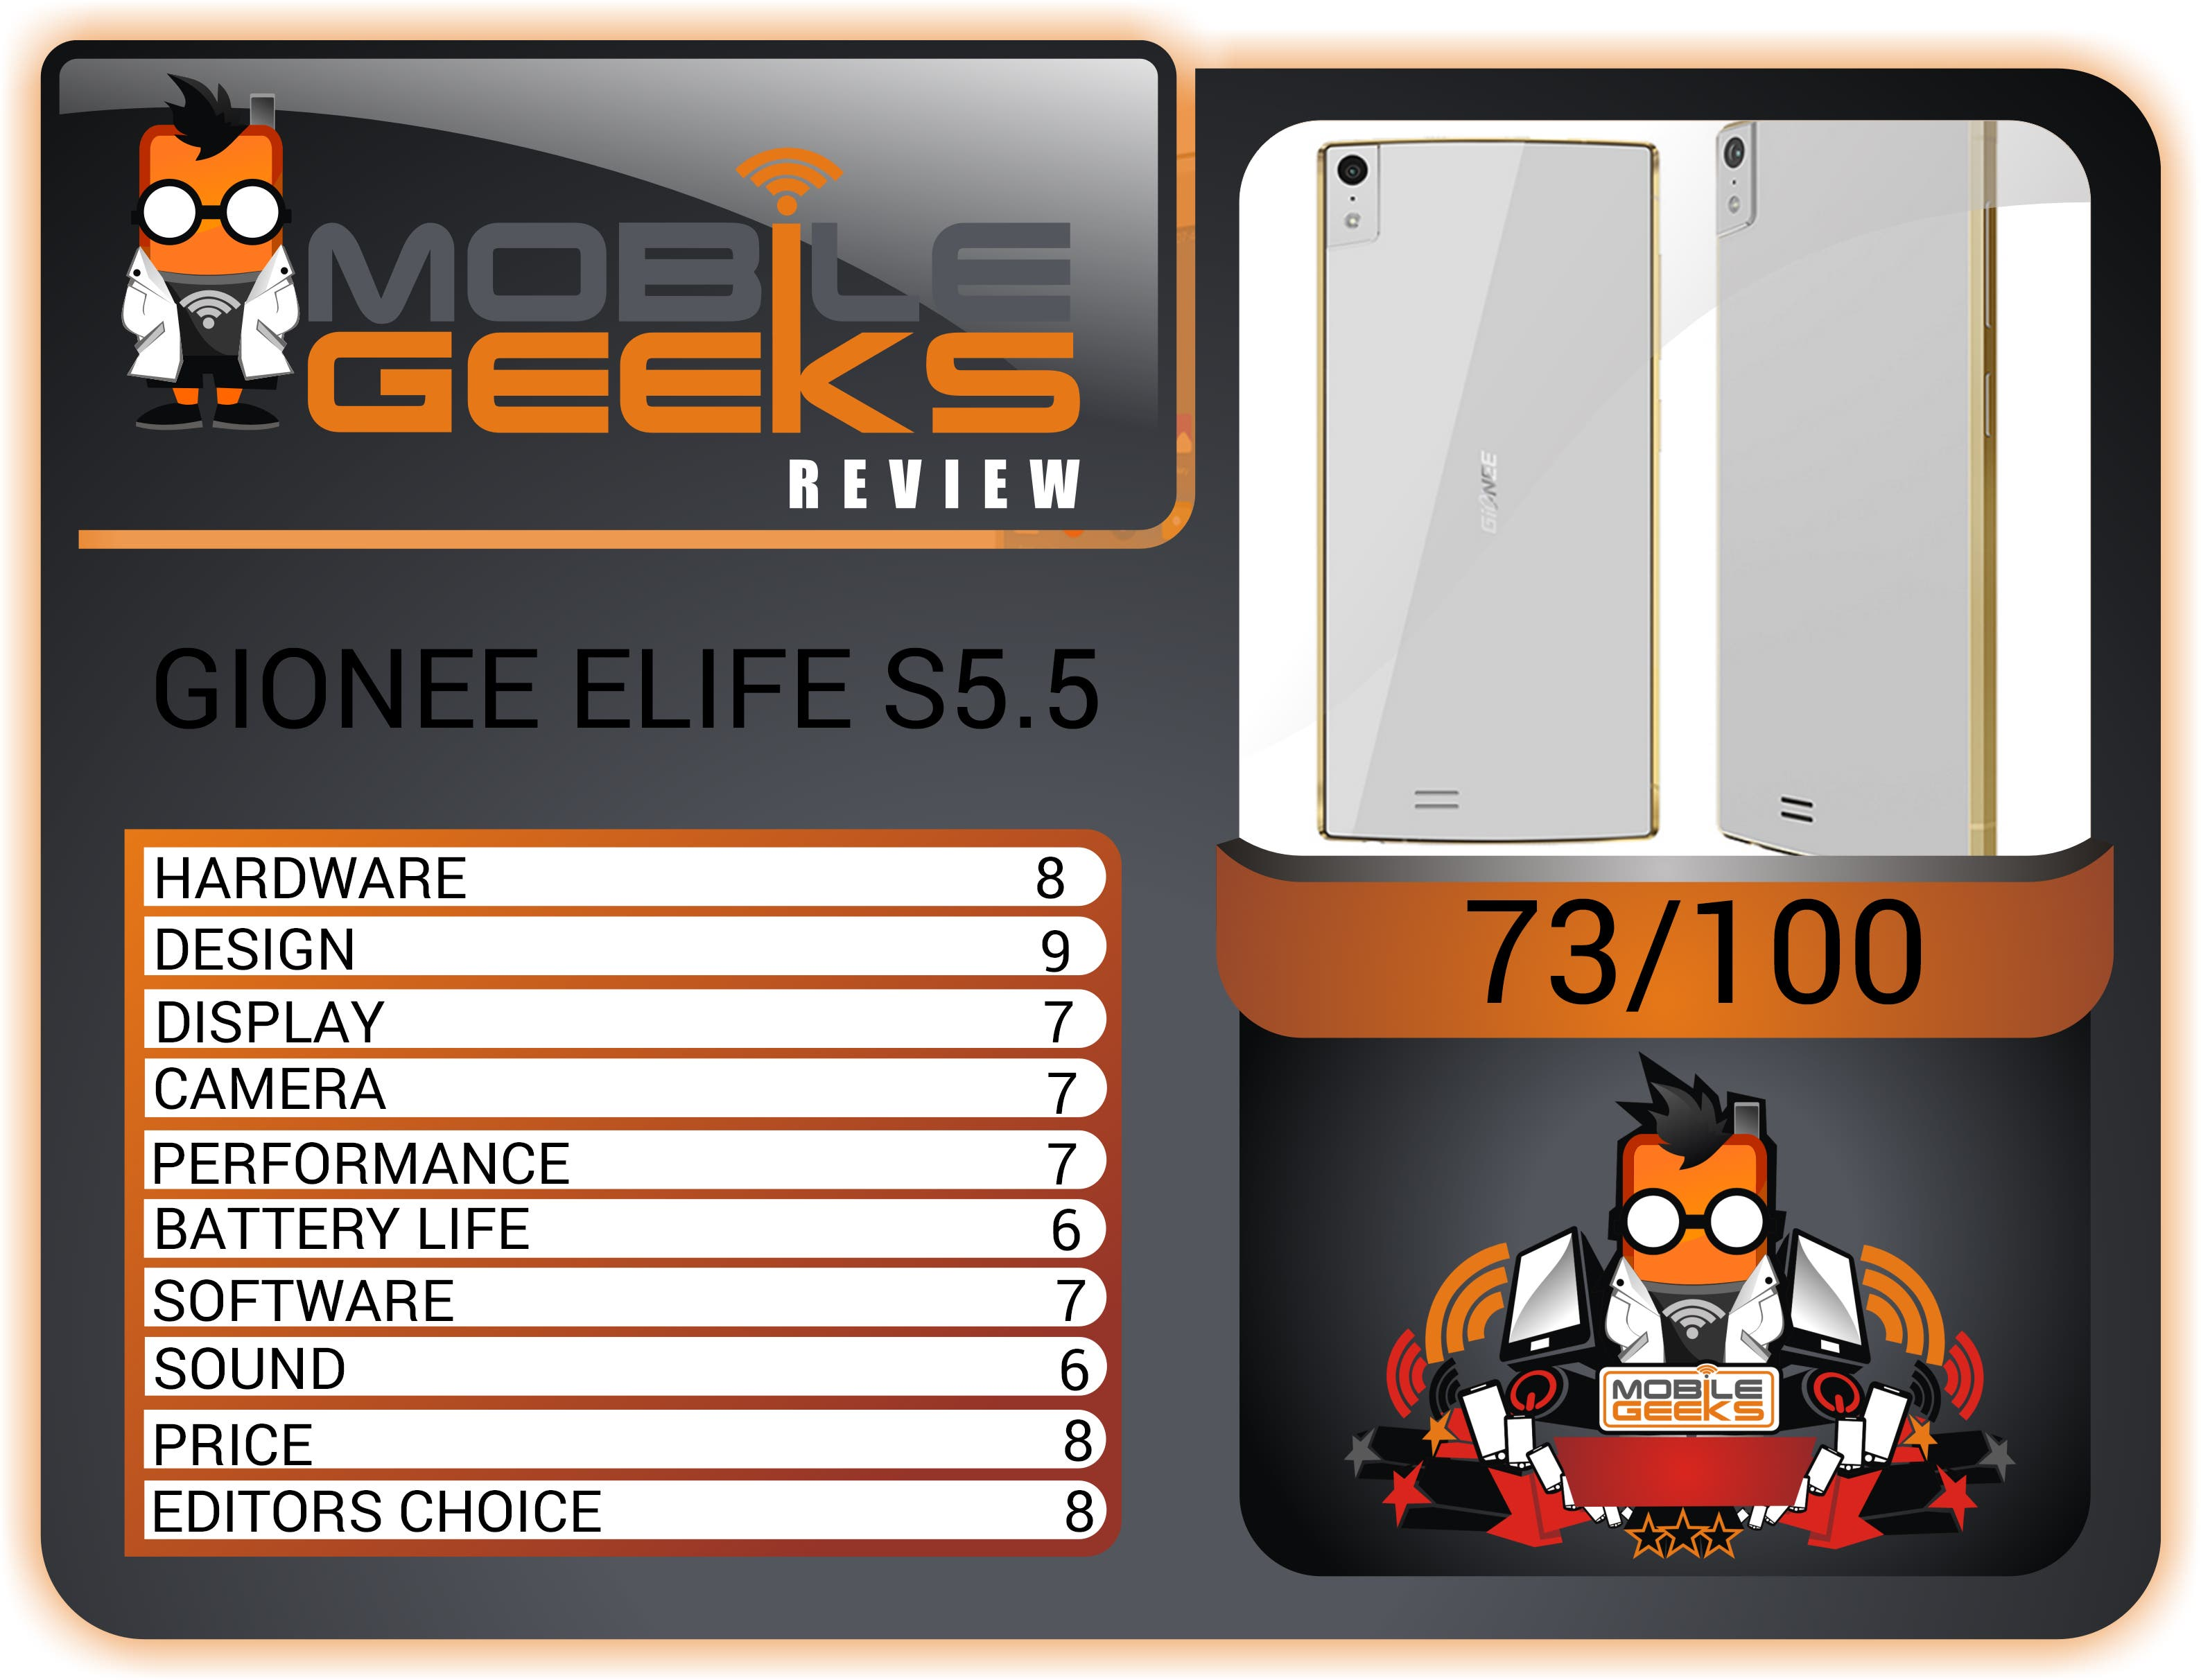 GIONEE-ELIFE-SCORE-CARD